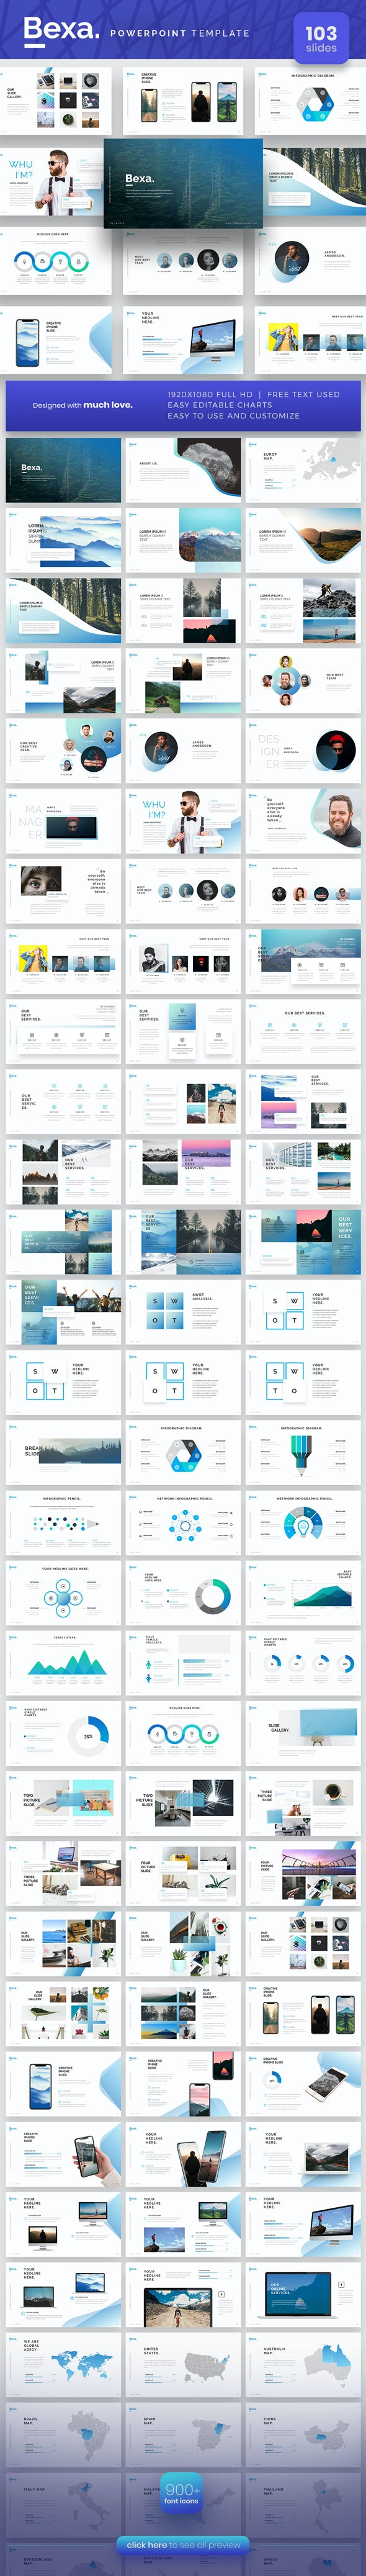 Bexa Powerpoint Presentation Template - PowerPoint Templates Presentation Templates